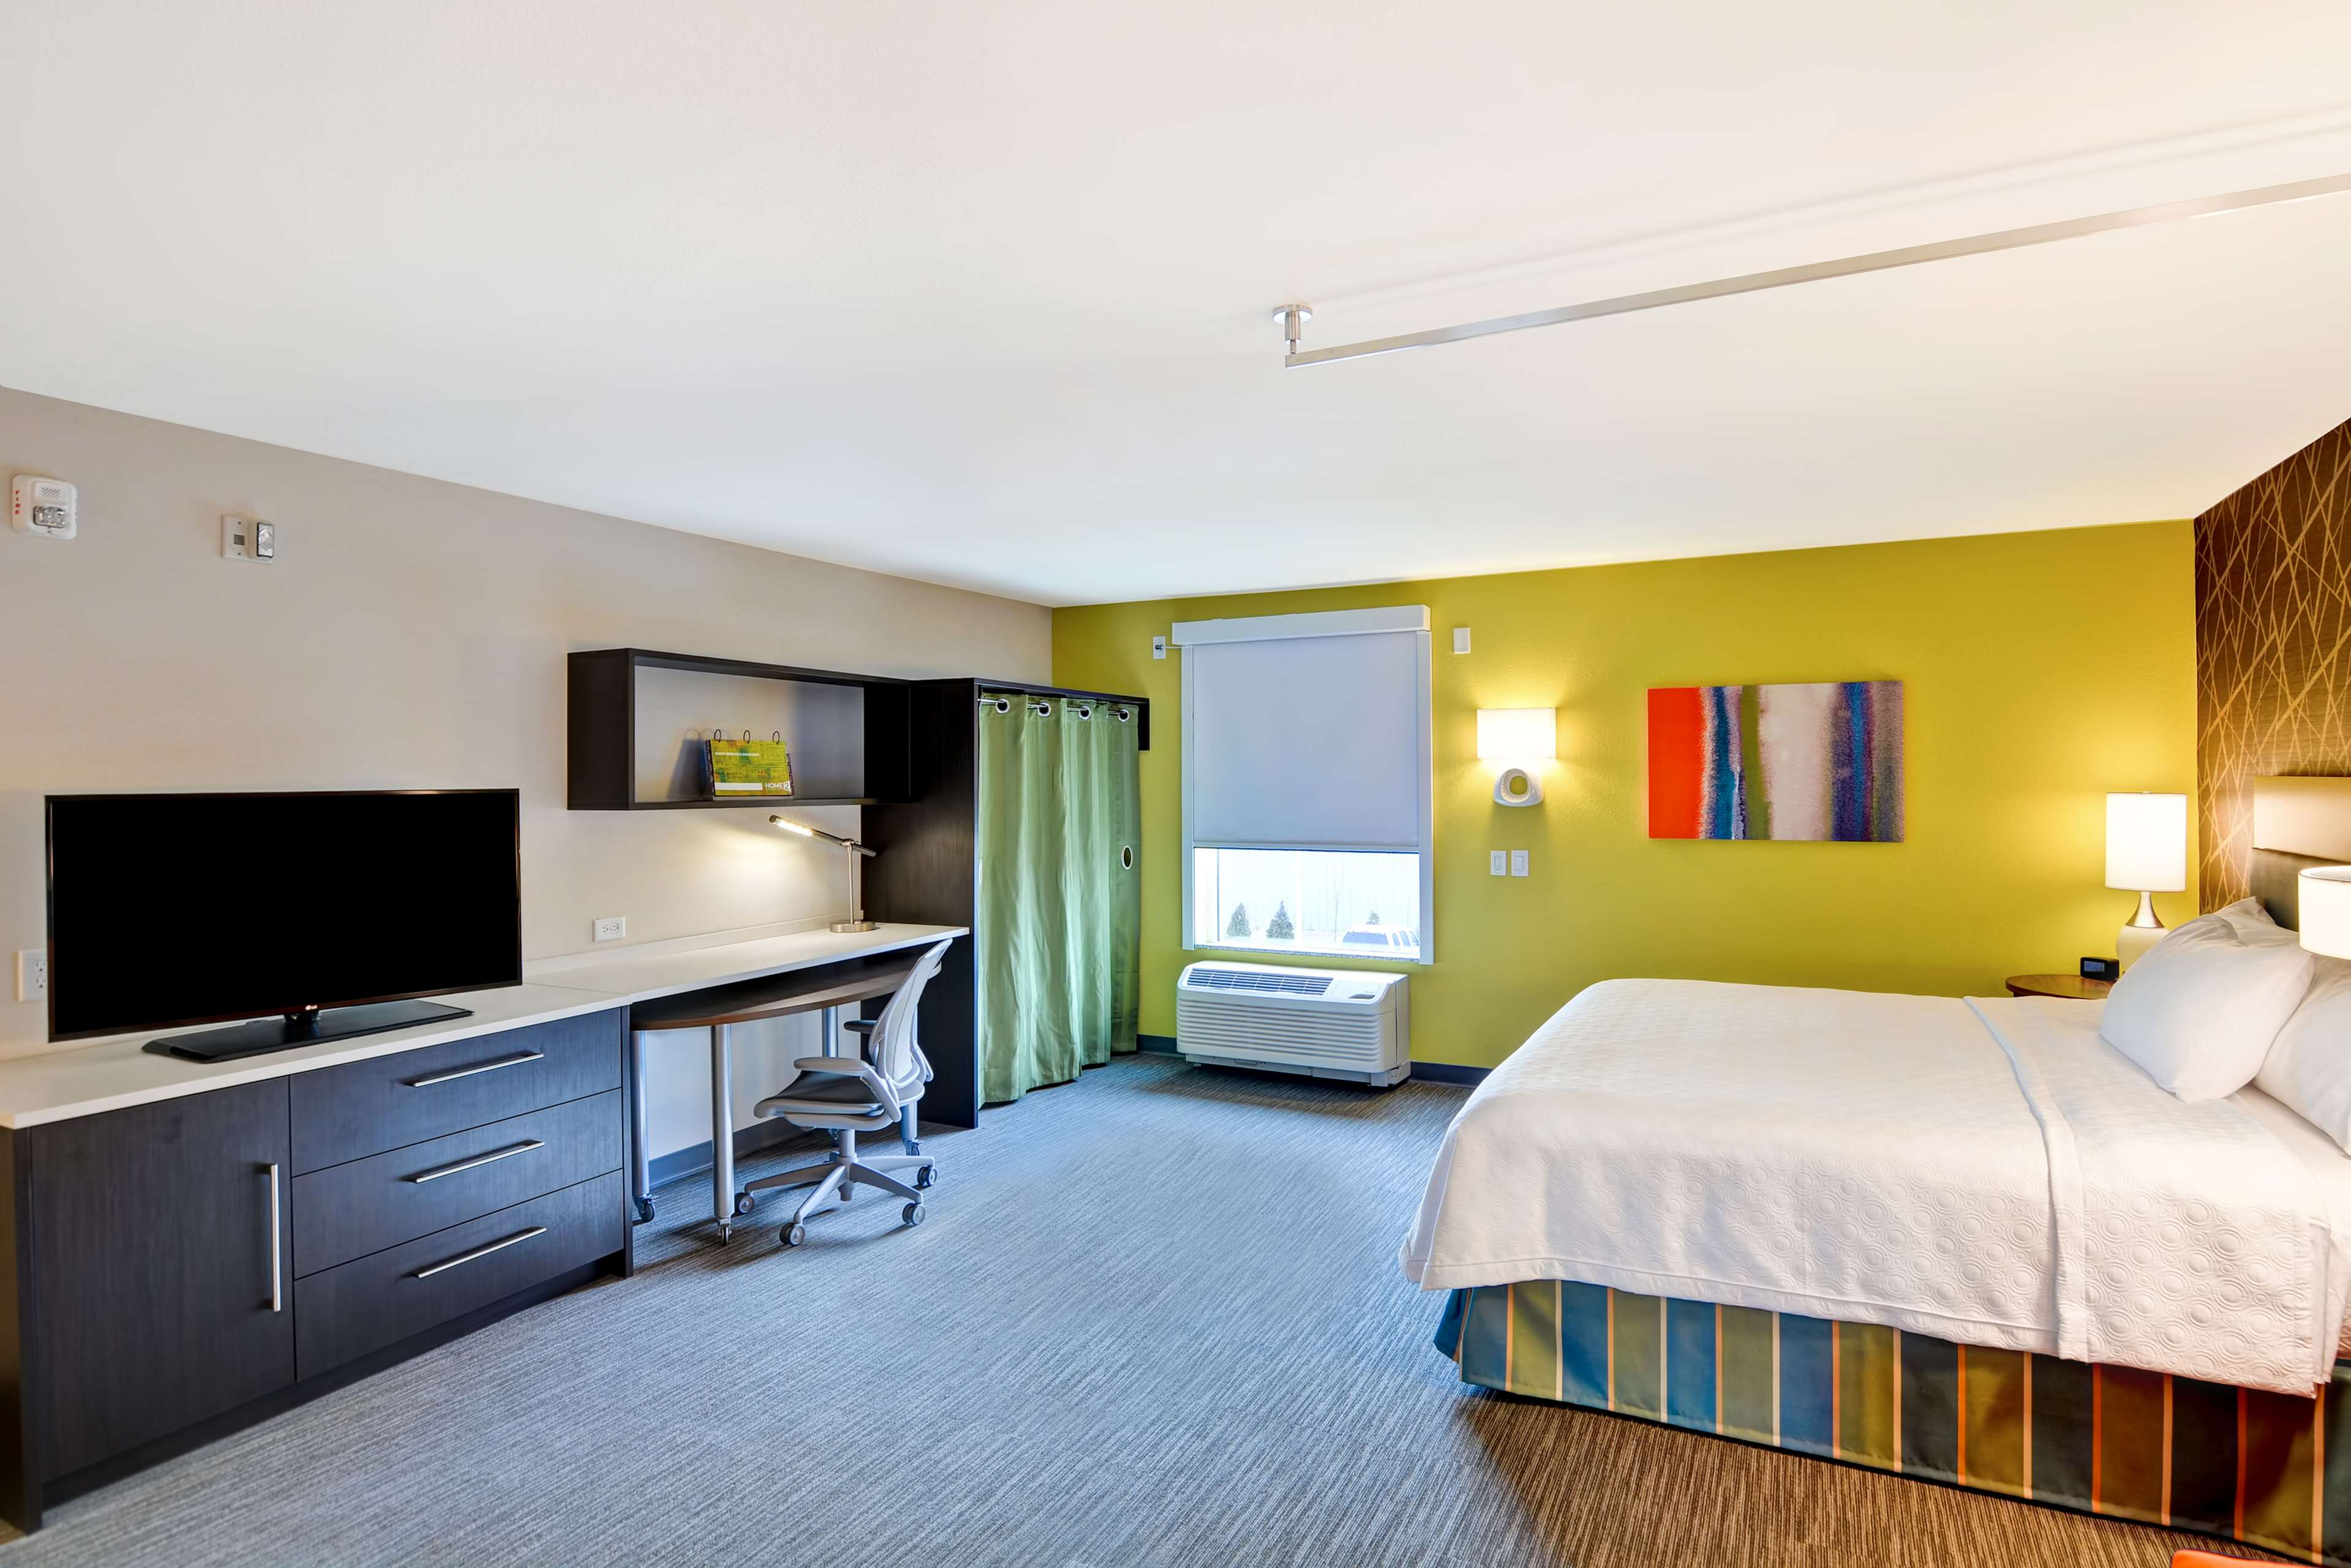 Home2 Suites by Hilton Green Bay image 17